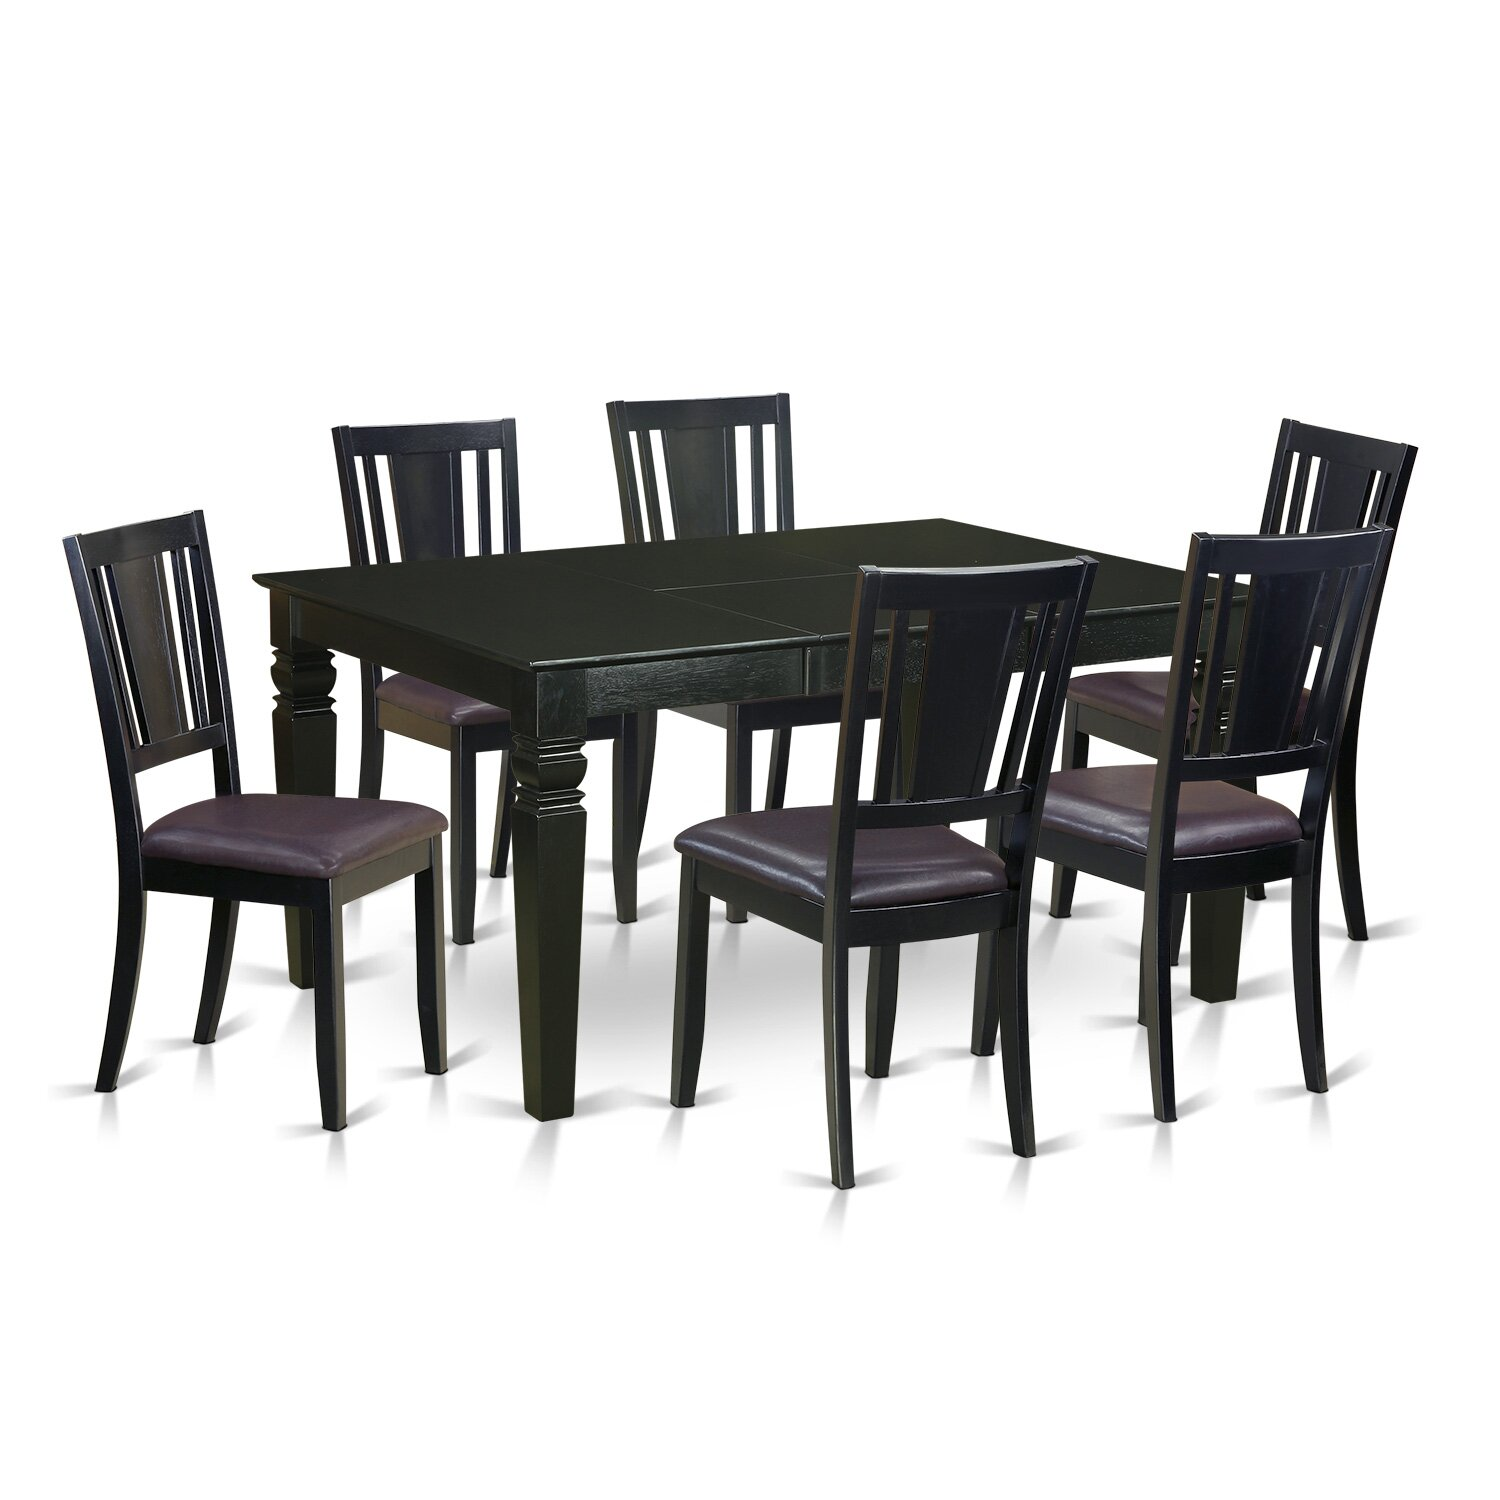 Wooden importers weston 7 piece dining set wayfair for Kitchen dining sets